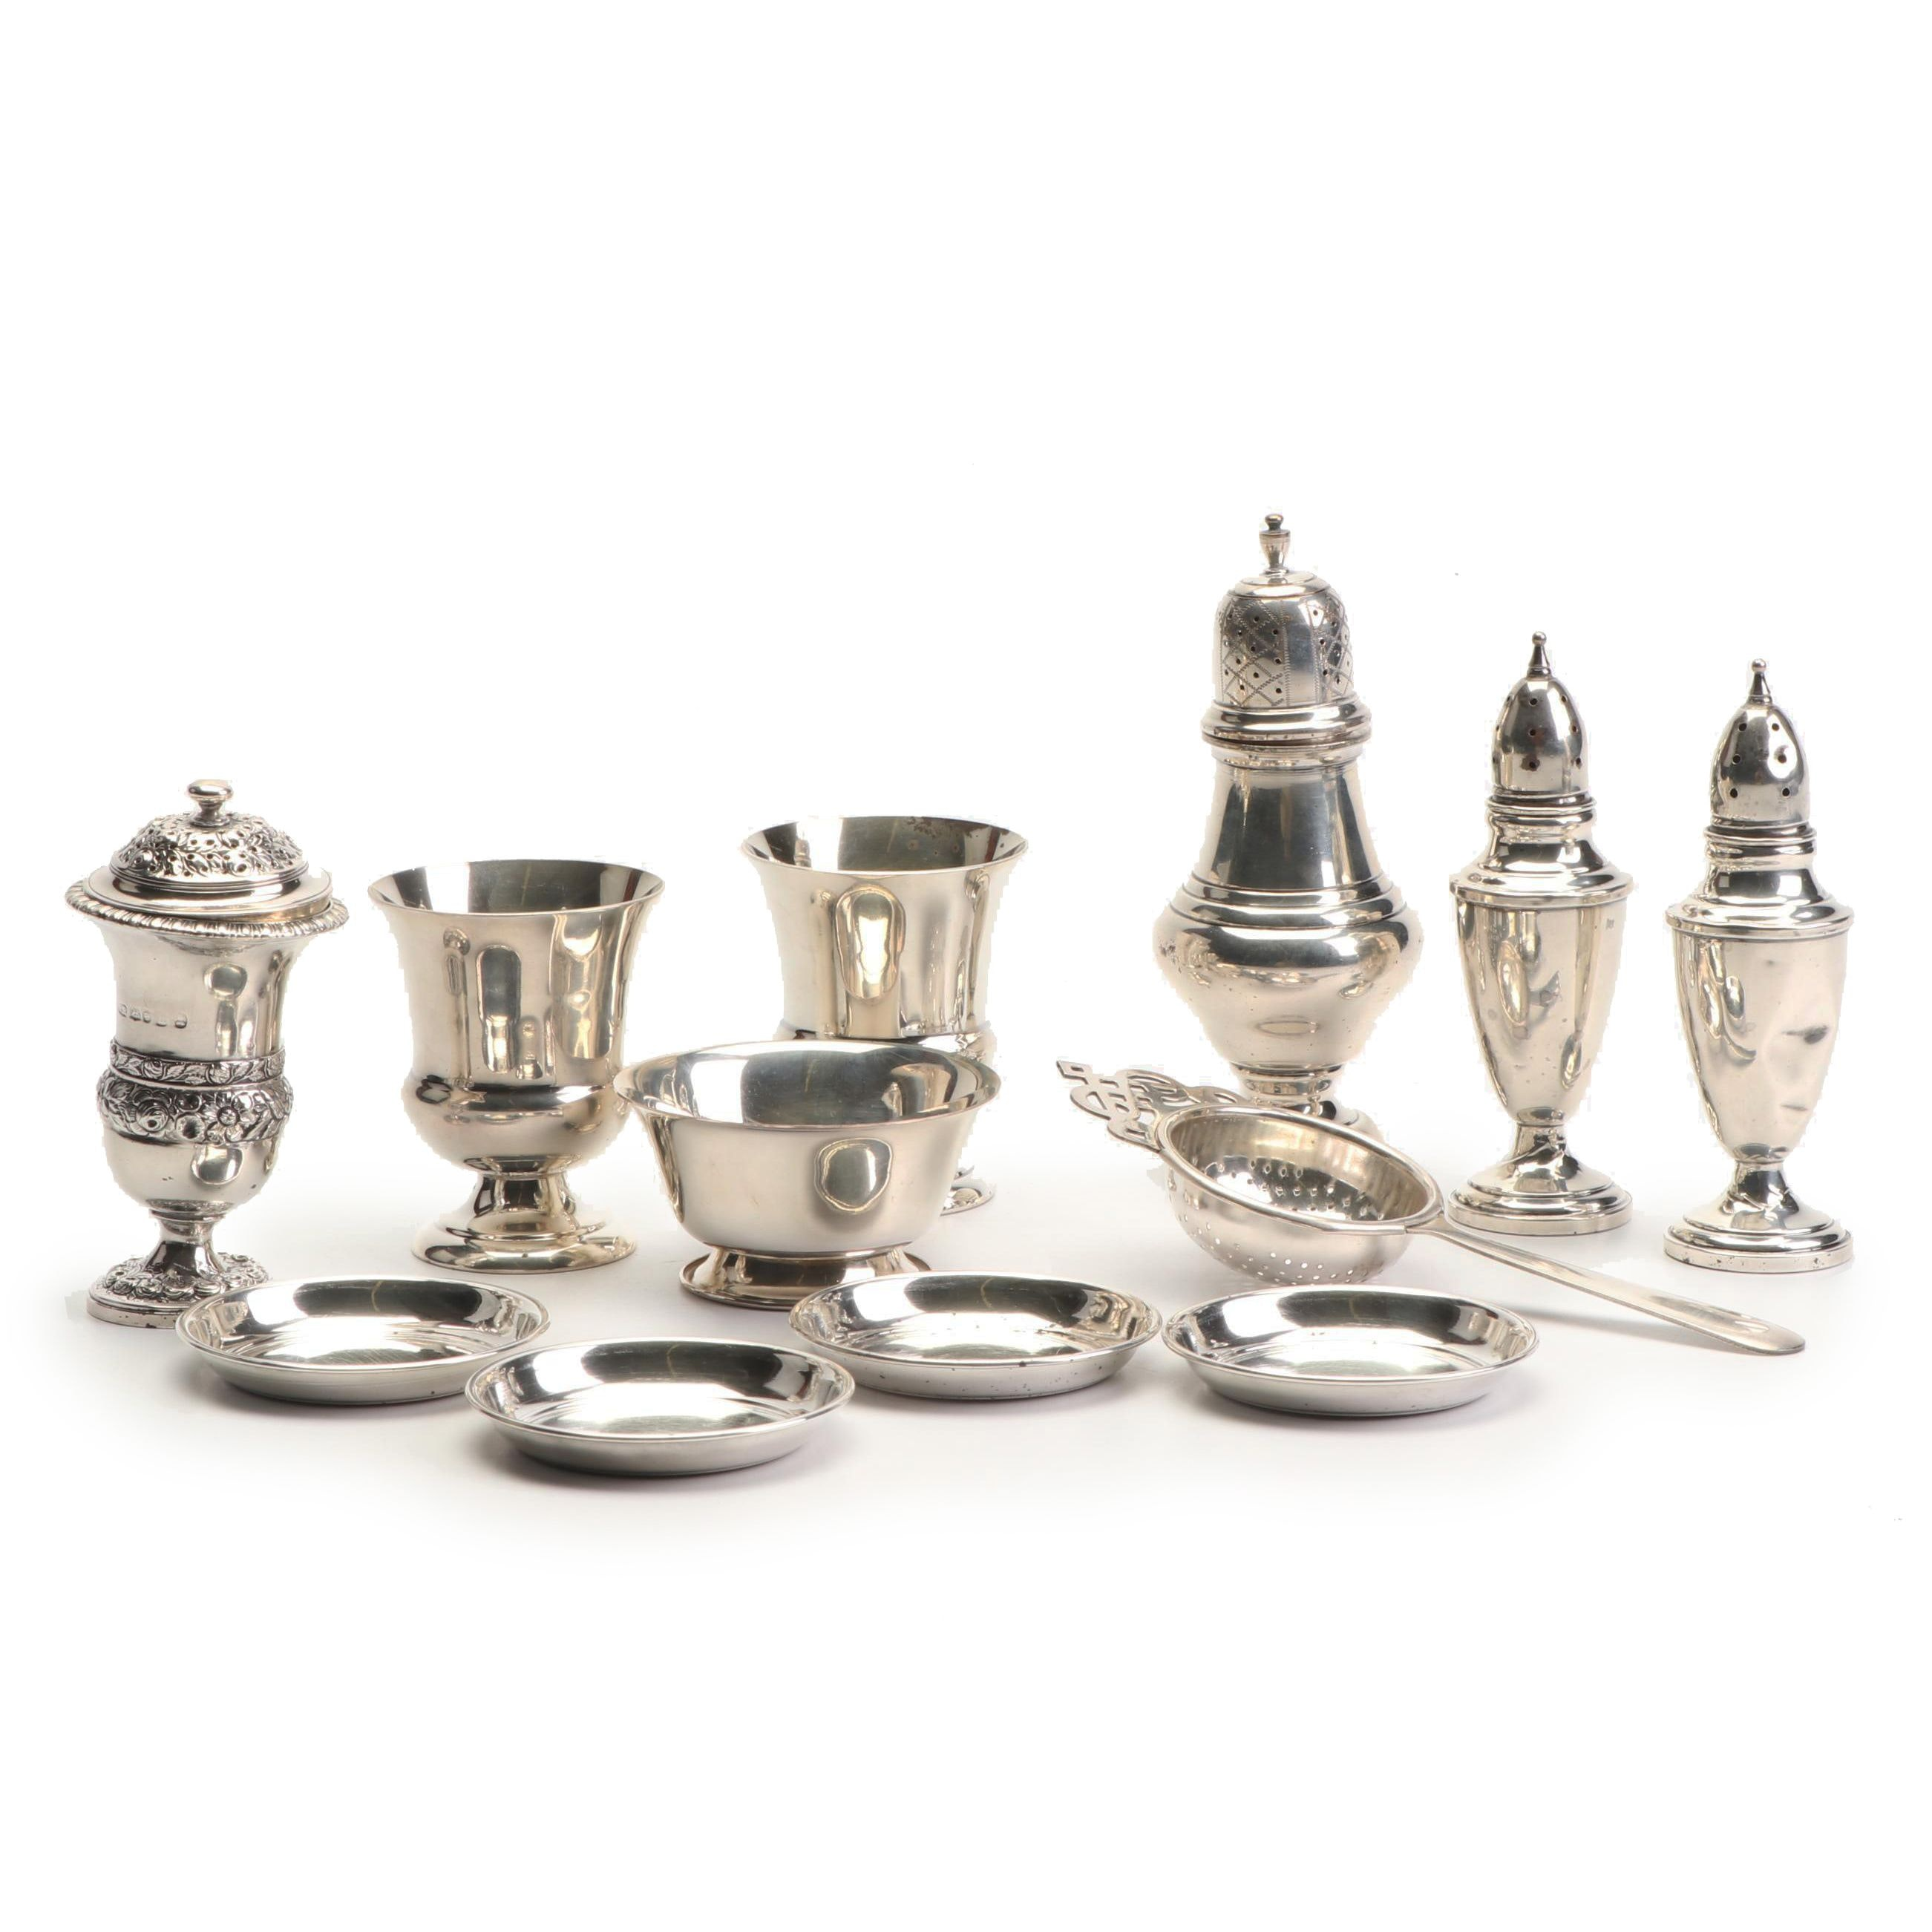 Thomas Wilkes Barker Sterling Muffineer with Other Sterling Tableware